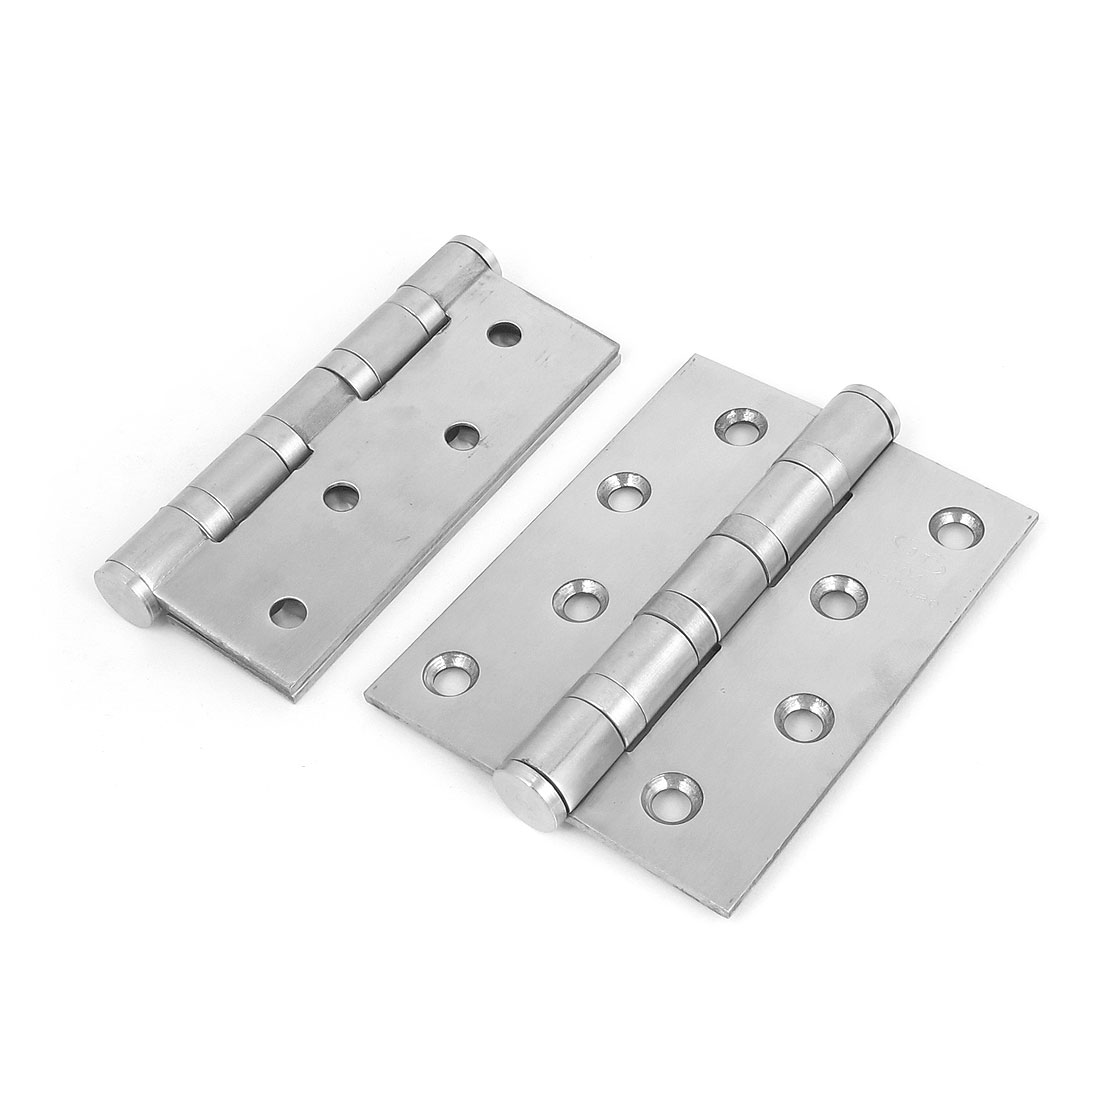 "2pcs Cupboard Cabinet 304 Stainless Steel Folding Door Butt Hinges 4"" x 3"" x 3mm"